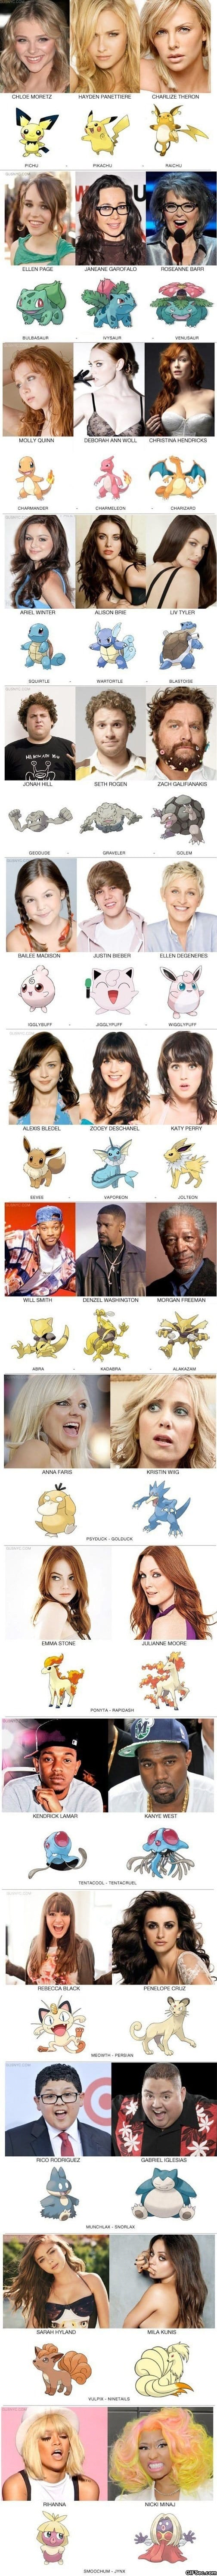 lol-celebrities-evolving-as-pokemon